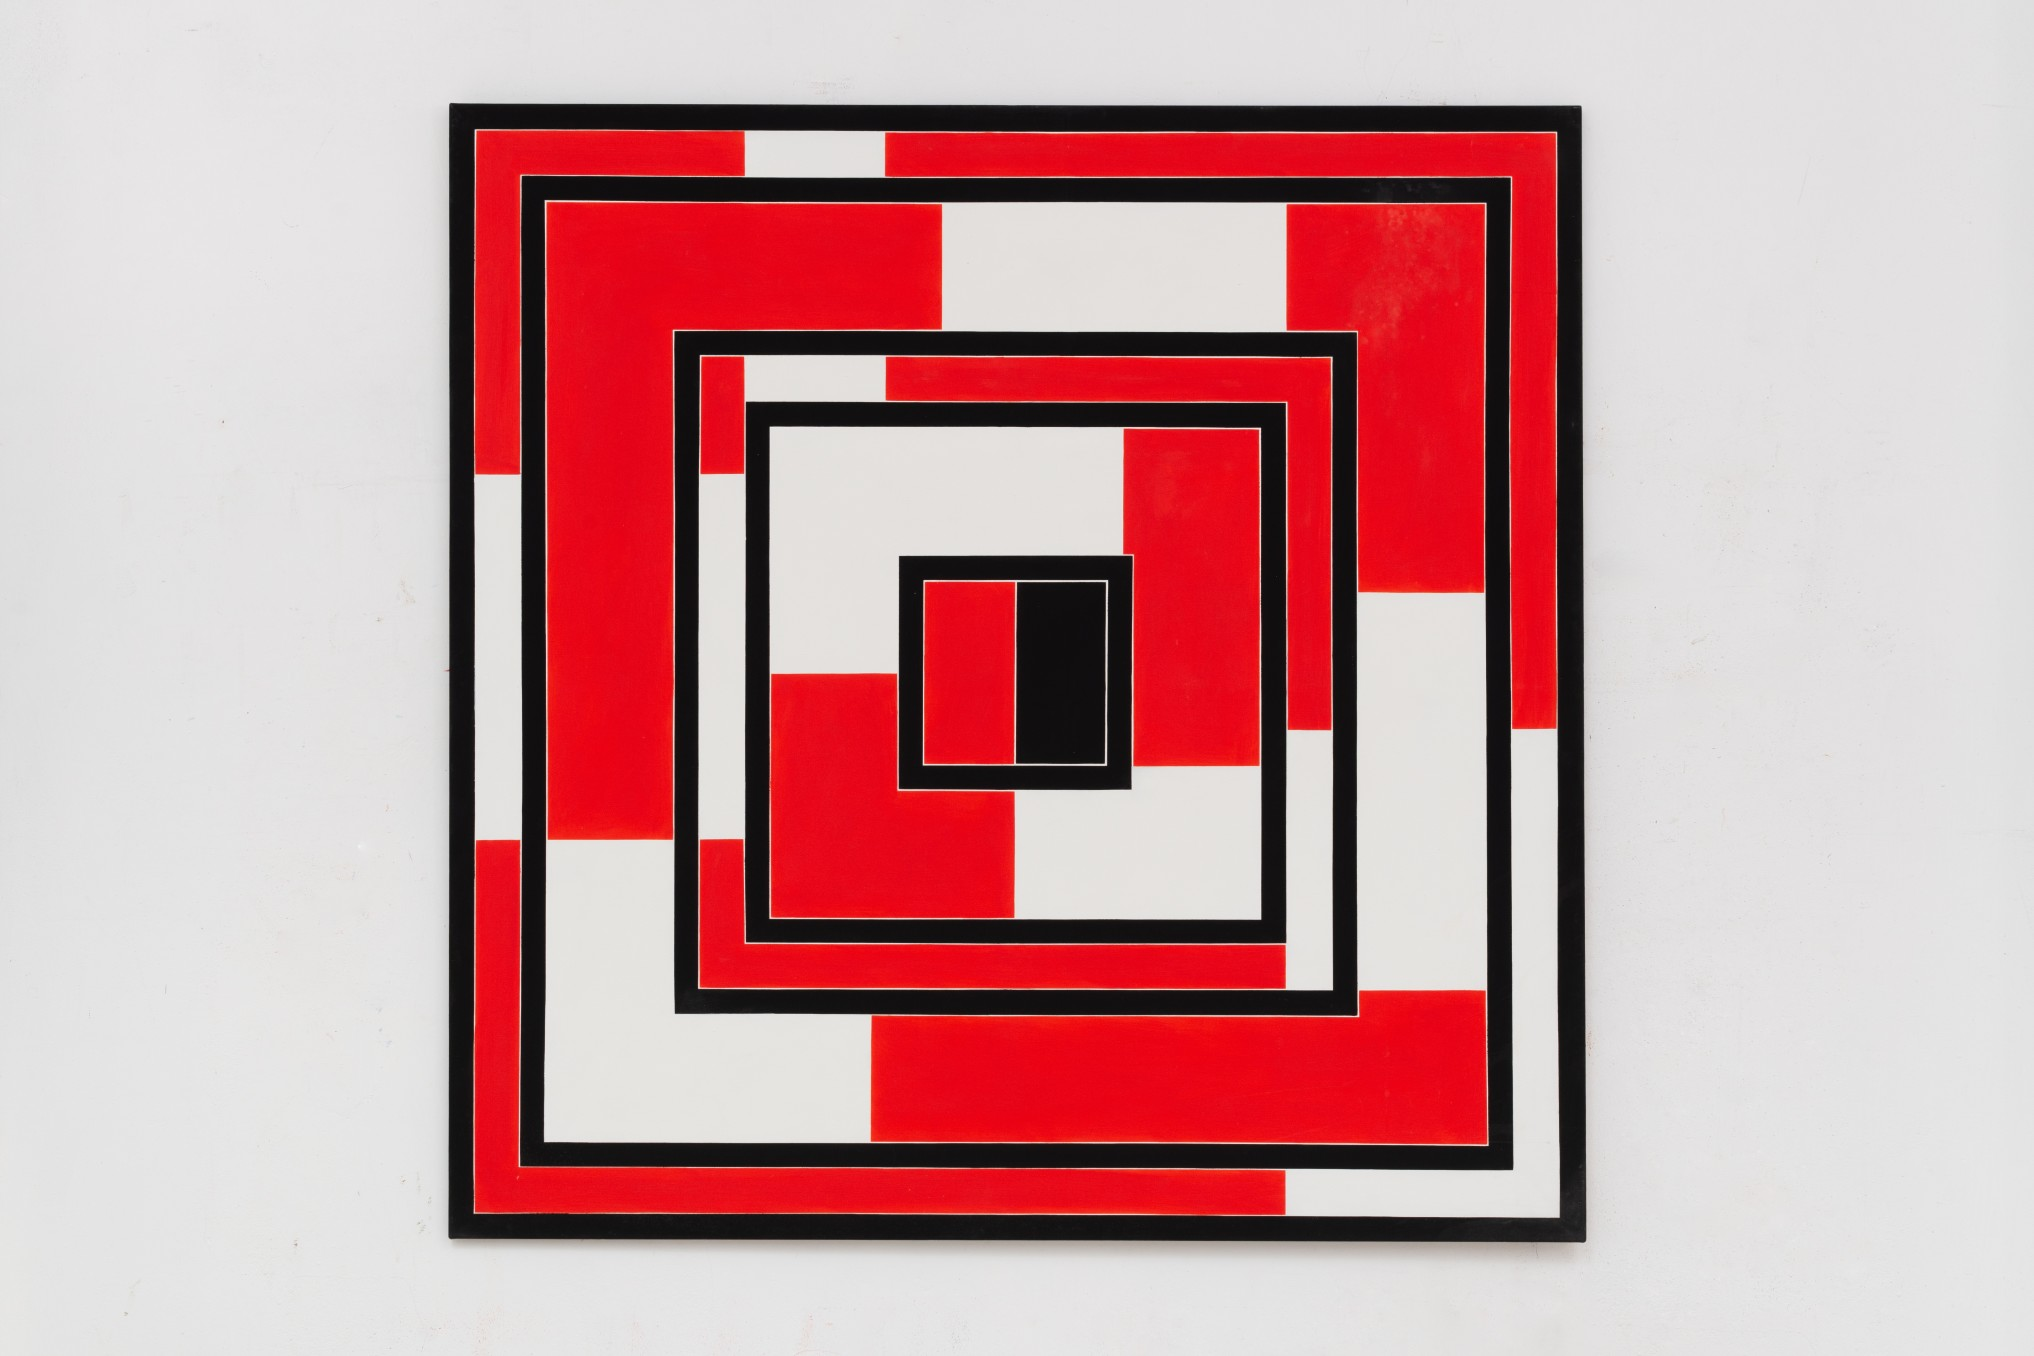 Mary Webb Red, black and white, 1971 Oil on canvas 152.4 x 152.4 cm 60 x 60 in